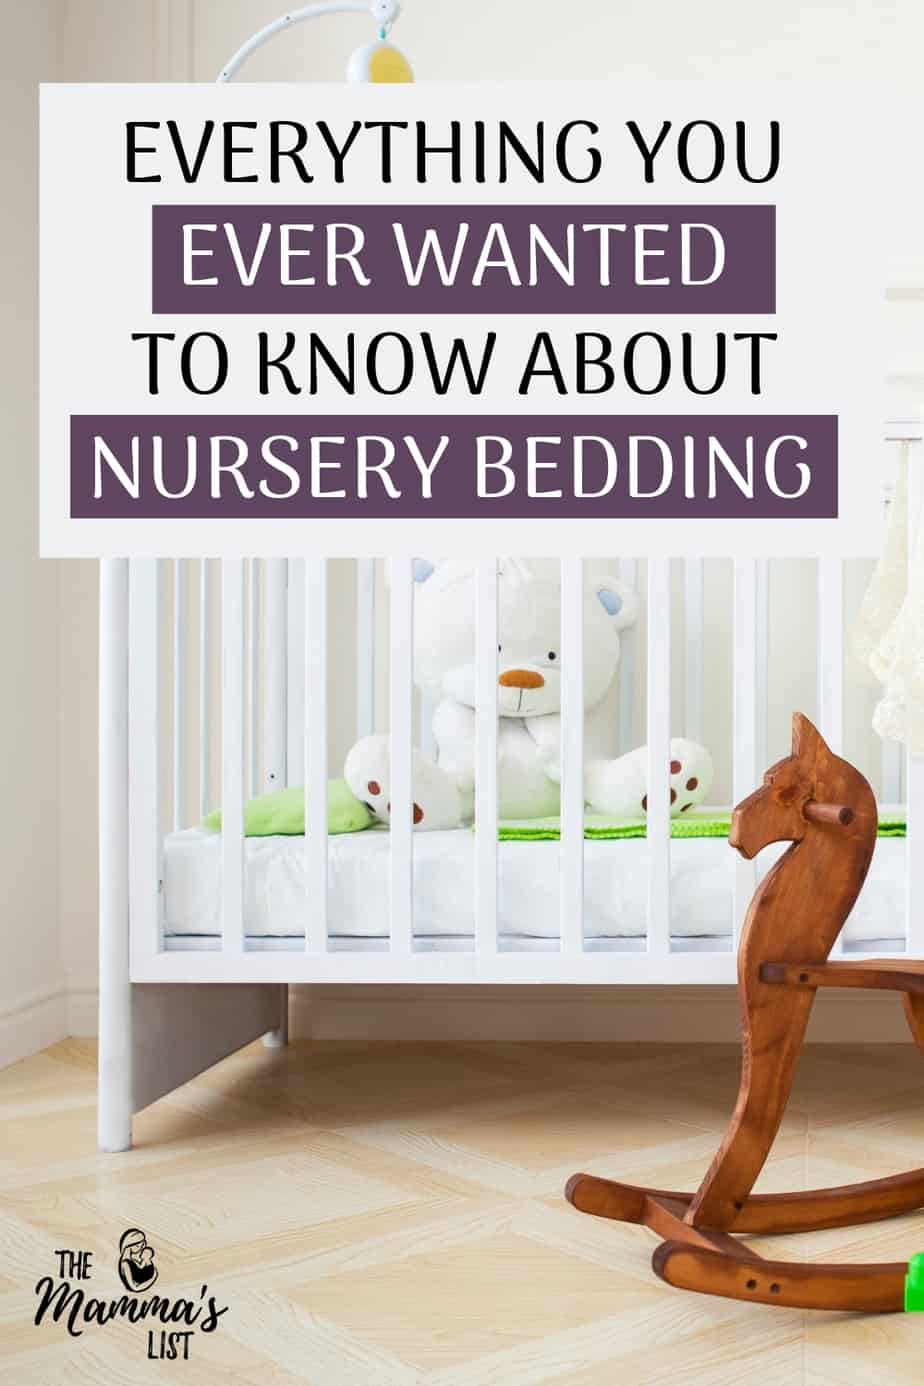 There are so many components to a baby's crib. Since they spend a lot of time there, you're probably worried about getting the right stuff. Check out everything you ever wanted to know about infant crib bedding from crib mattresses, to crib mattress pads, sheets, breathable crib bumpers, to toddler pillows and blankets. Deck out your nursery in style, and feel good about what you're getting.